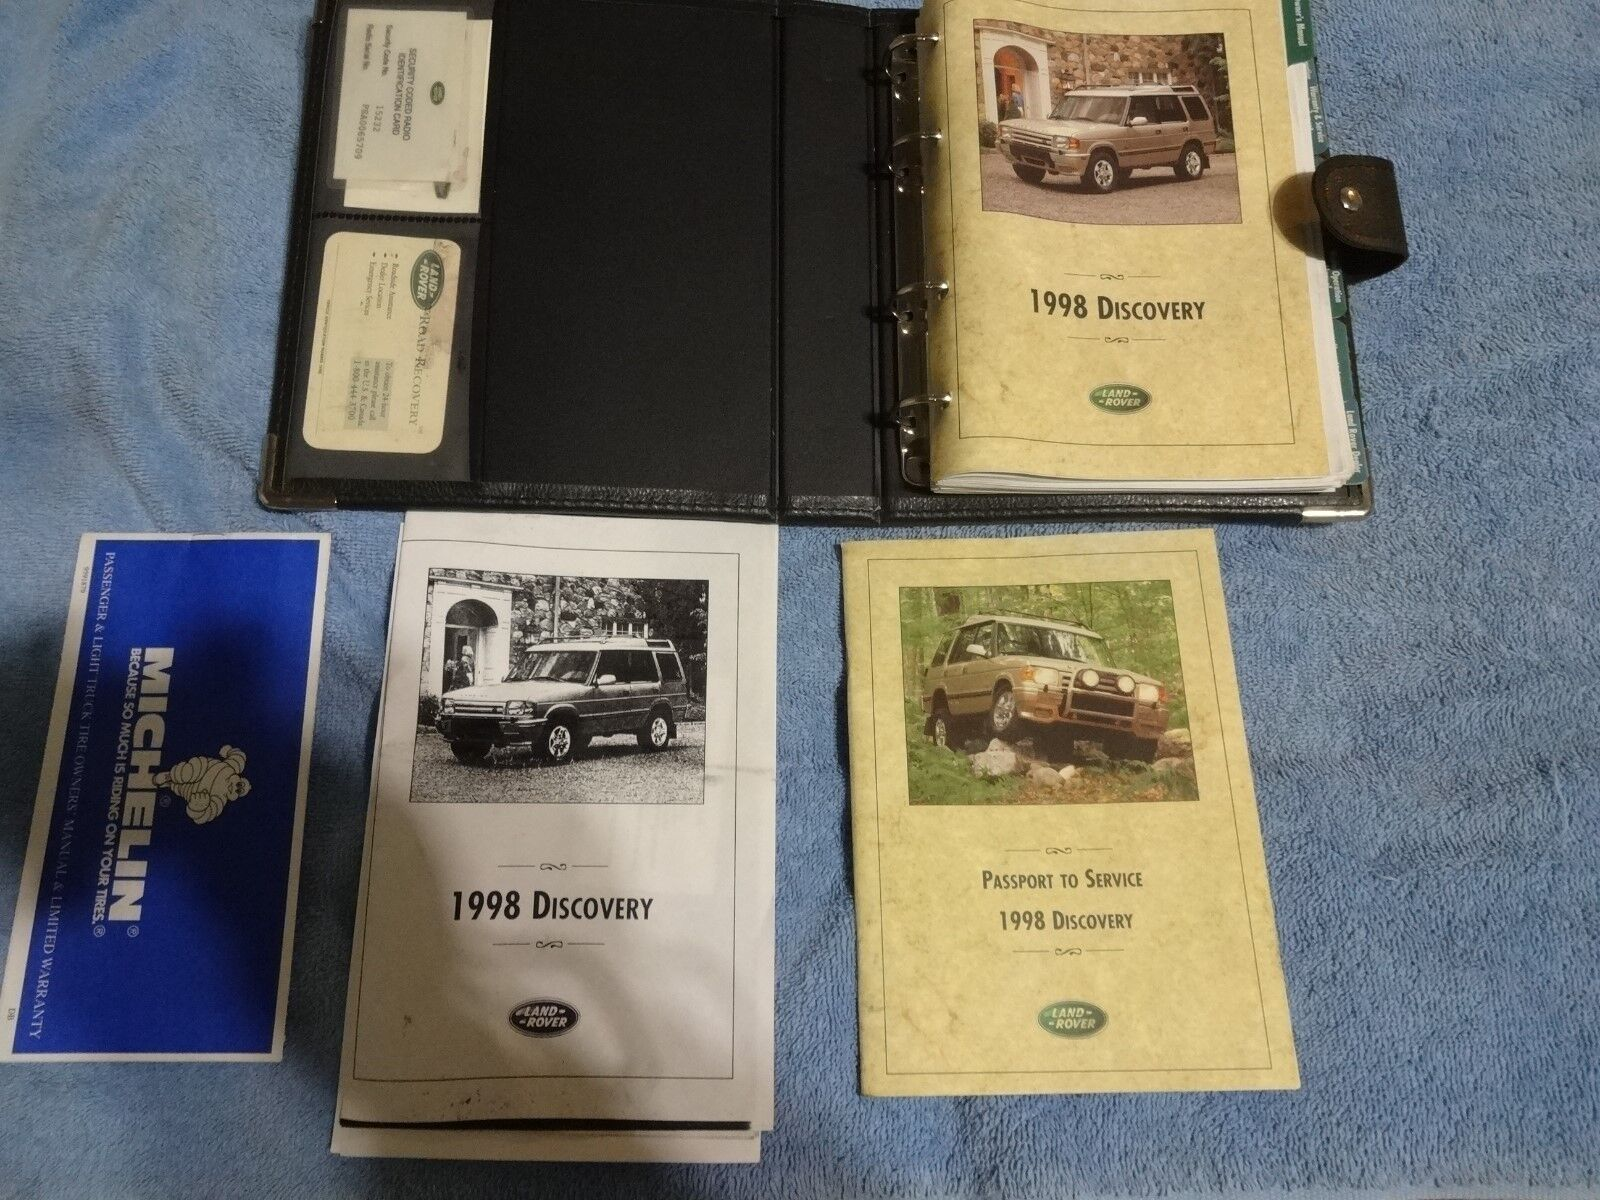 1998 Land Rover Discovery owners manual set with case oem good condition